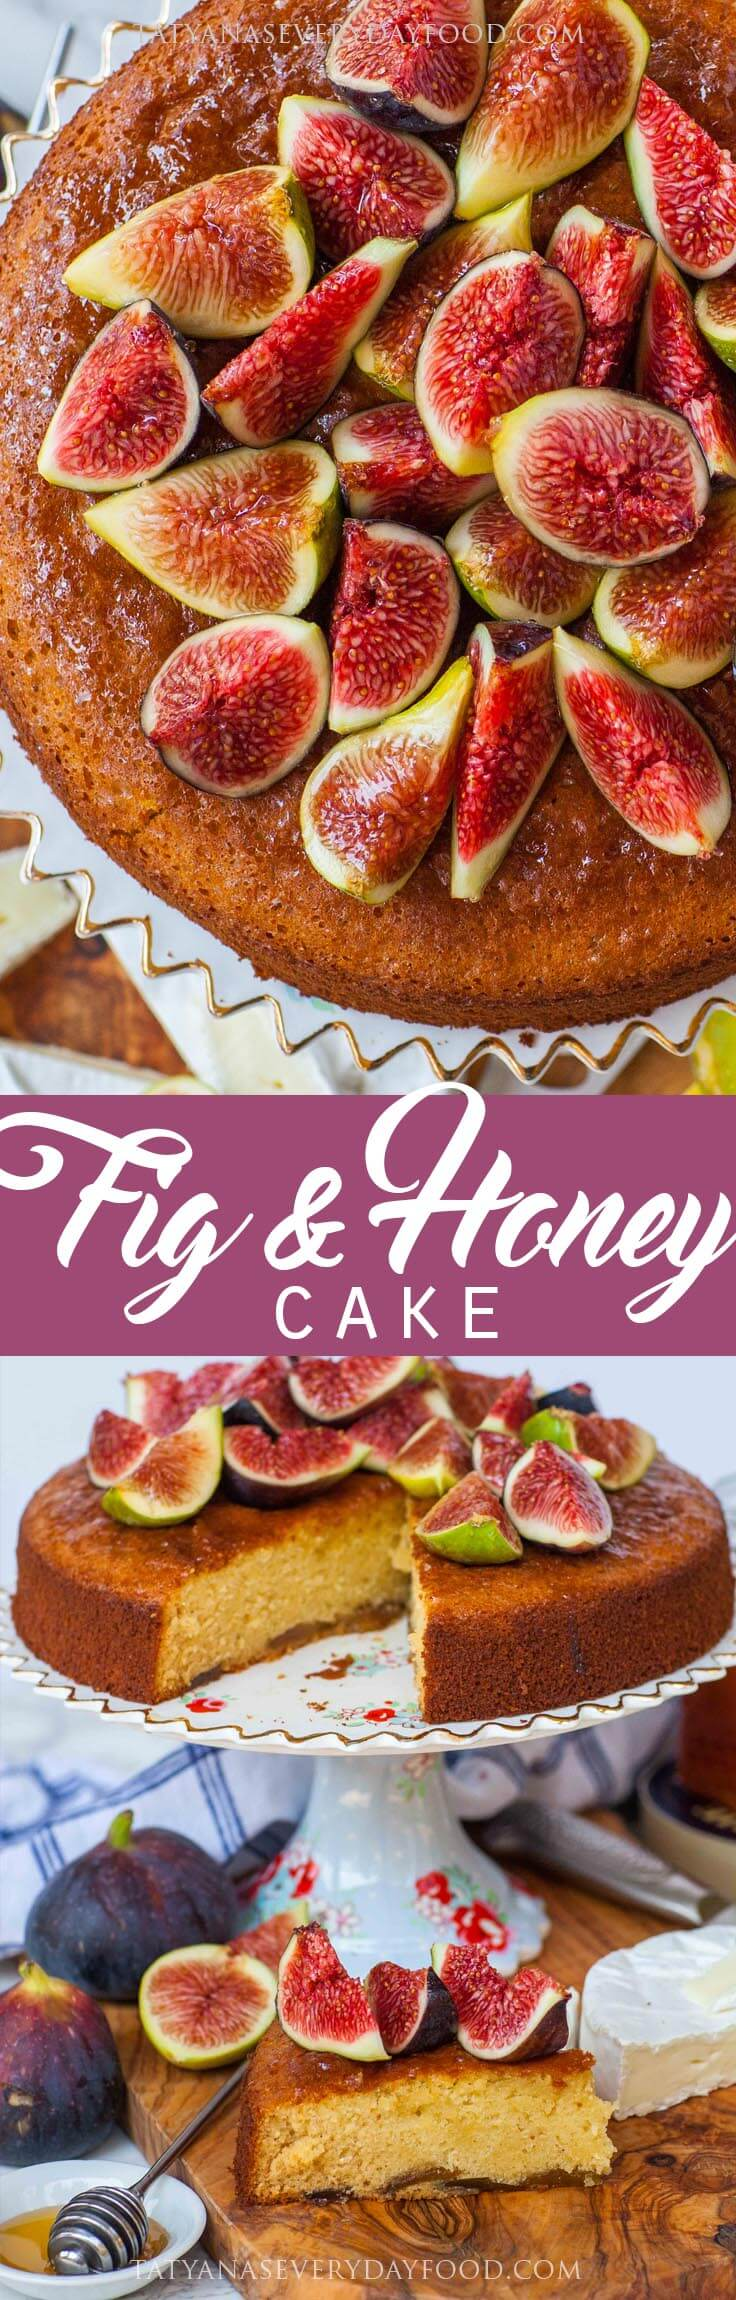 Easy Fig Cake with Honey - video recipe